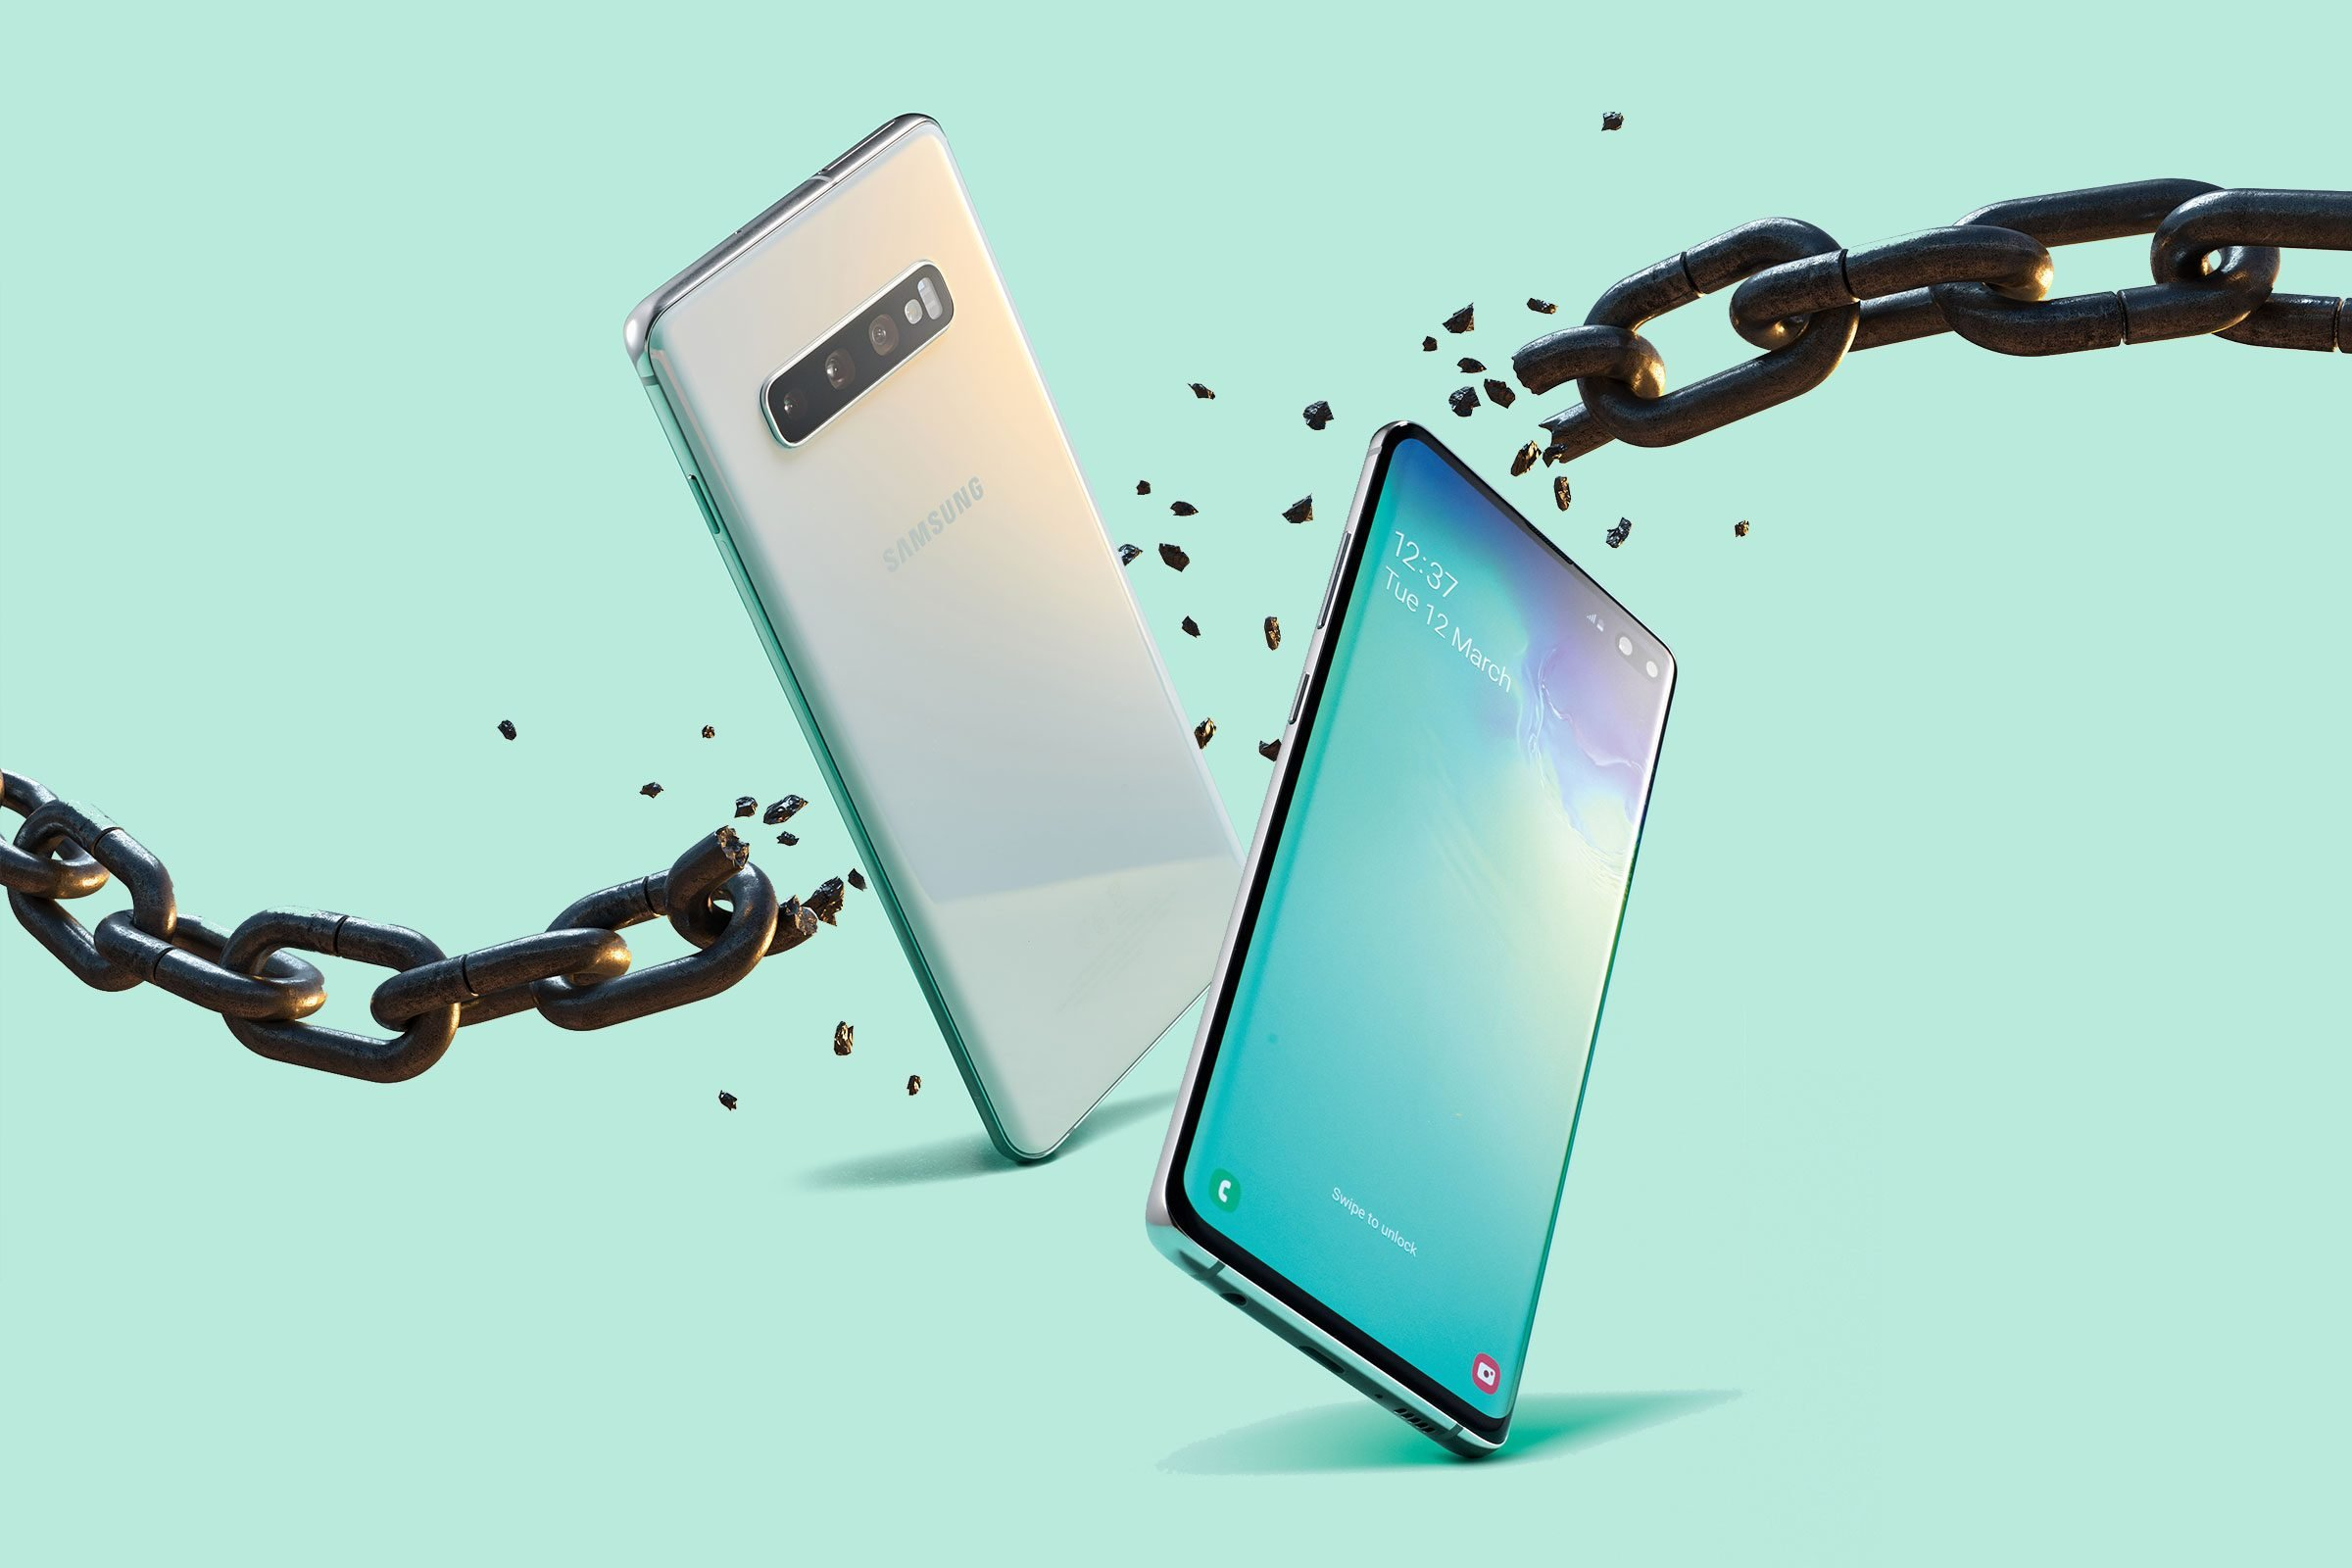 Two android phones breaking through a chain to represent rooting, or dismantling the phone's internal coding.